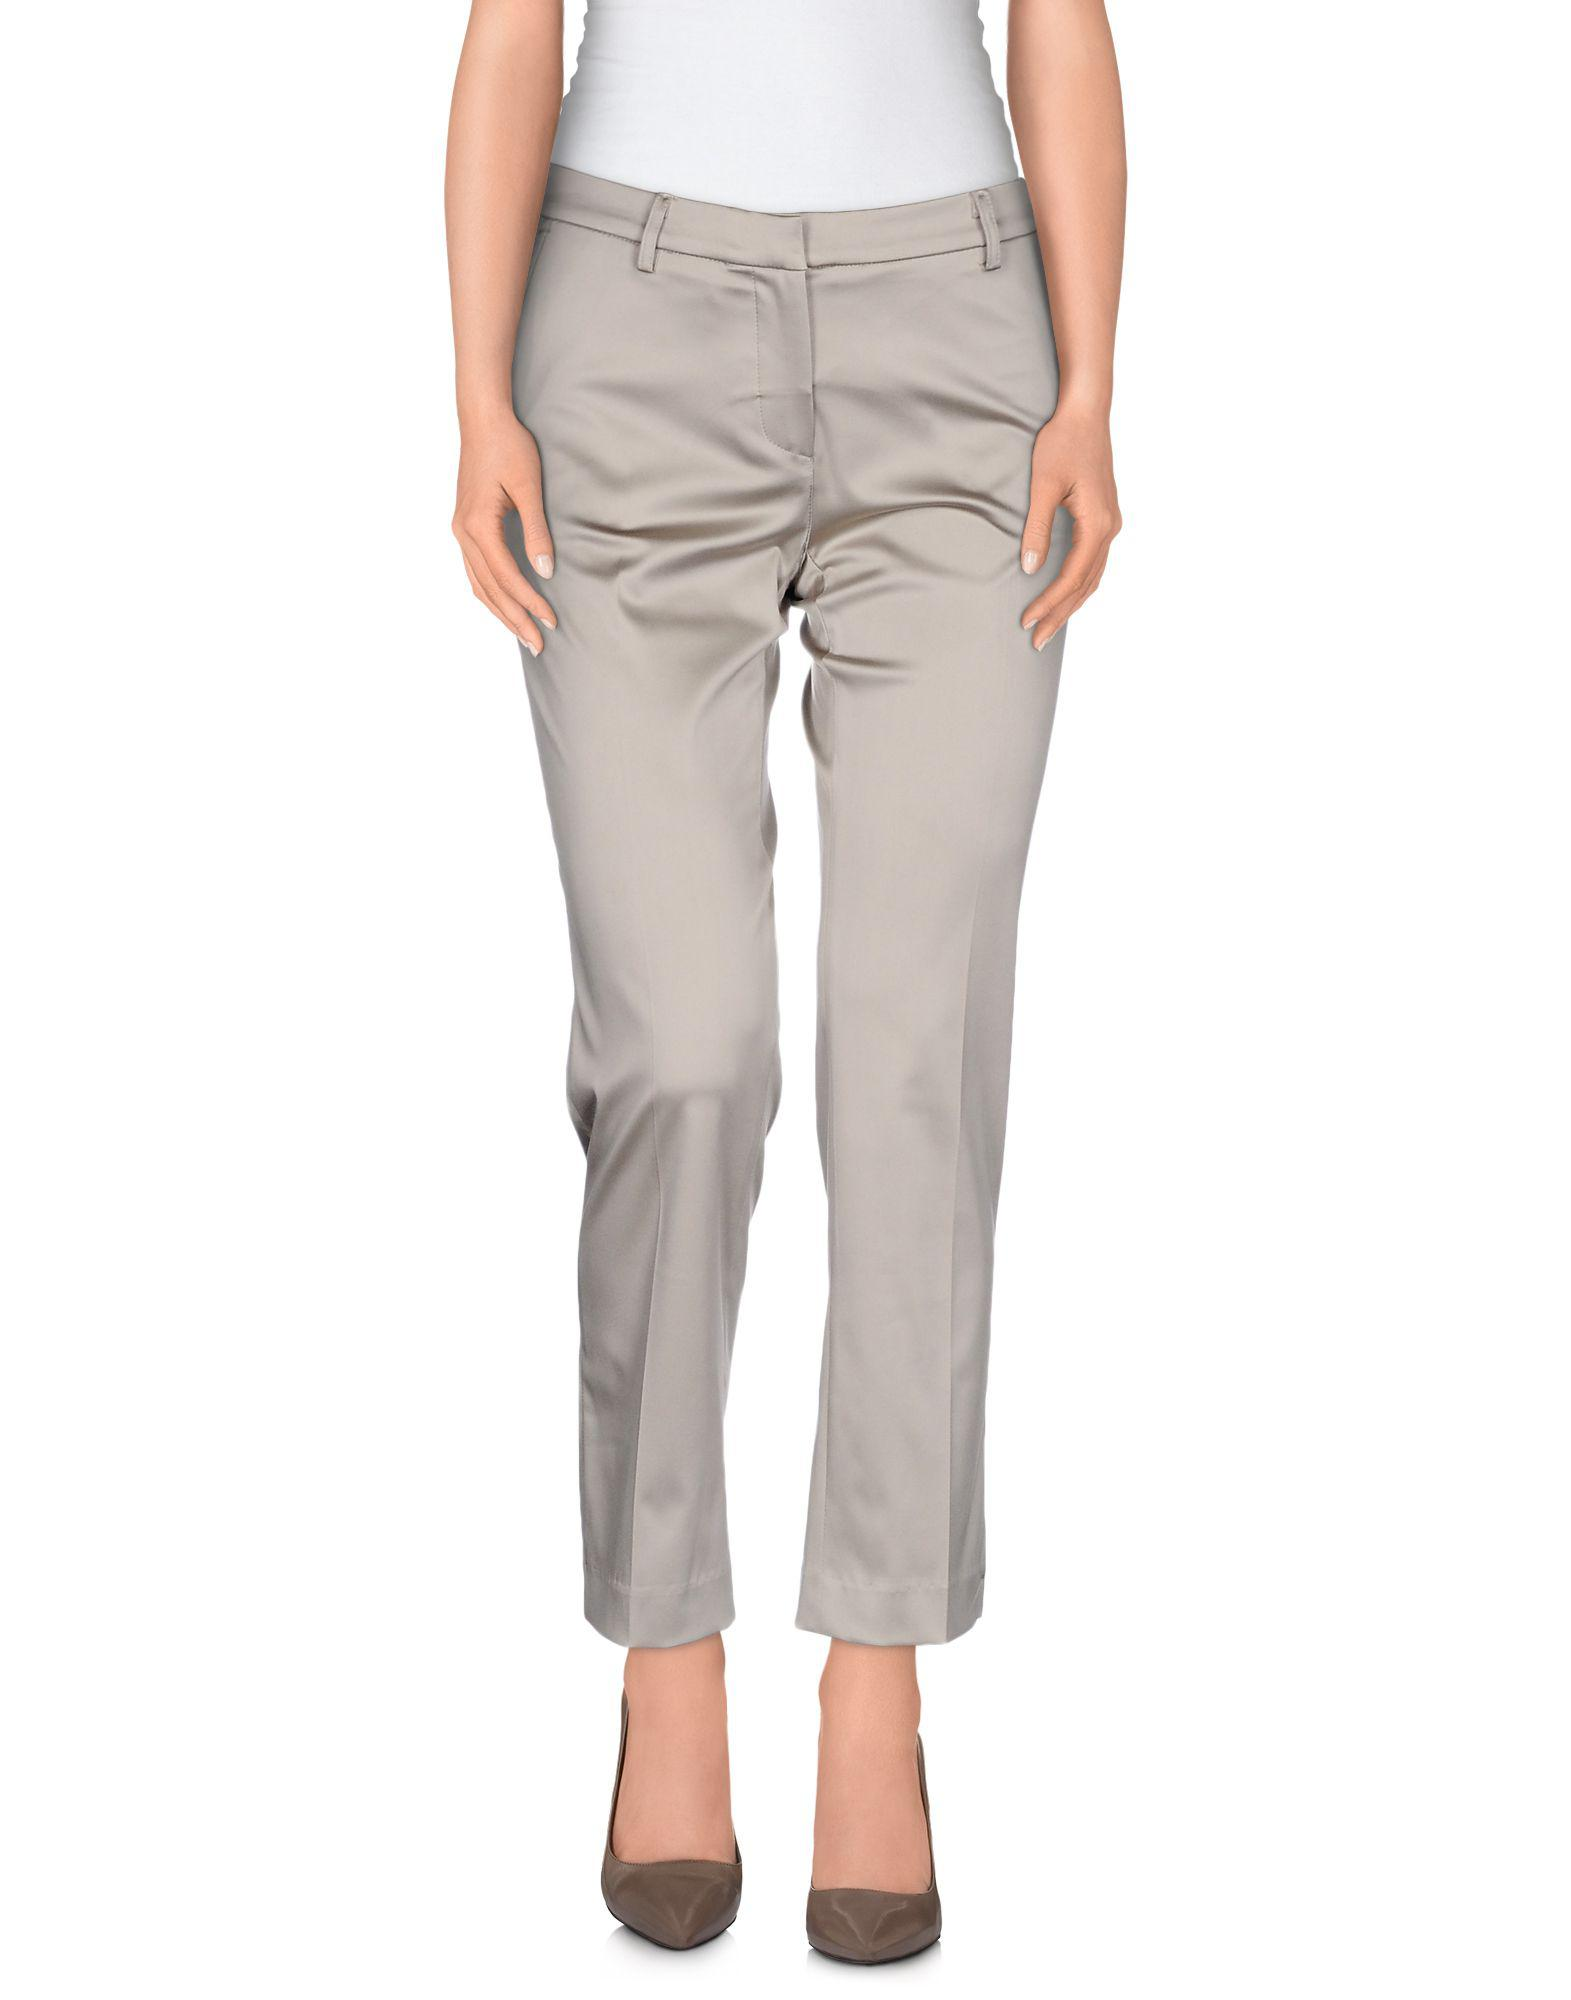 TROUSERS - Casual trousers Très Chic S.a.r.t.o.r.i.a.l Clearance For Cheap In China Online Sale Online Release Dates Authentic Outlet Geniue Stockist edlOaS